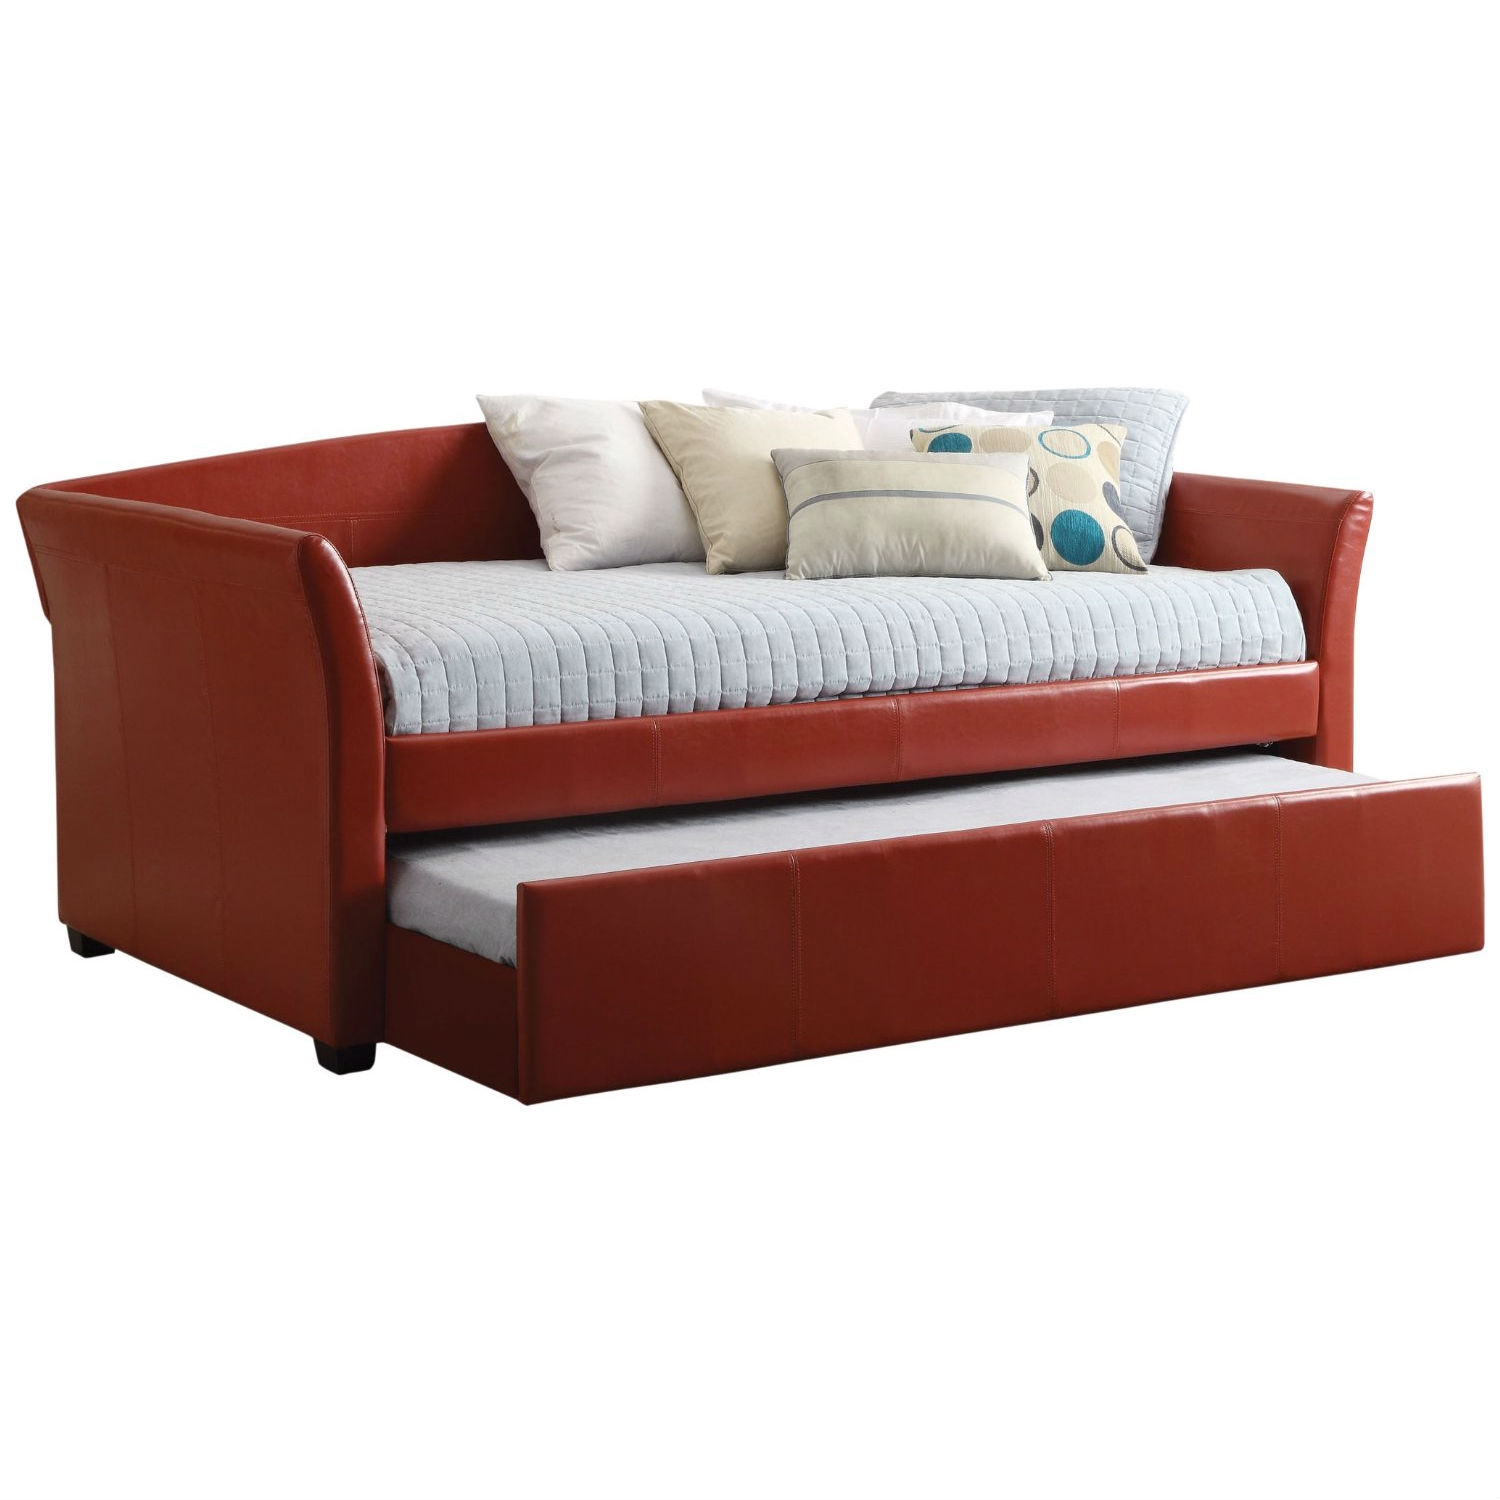 Twin size Red Faux Leather Upholstered Daybed with Trundle: Product Code: RFLDT483 : The simple, clean lines of this Twin size Red Faux Leather Upholstered Daybed with Trundle make it a perfect fit in any sleep space. The solid wood internal frame covered in leatherette cushioned back, sides and all-around for comfort and comes with a removable slipcover. Practical roll-out twin trundle great for overnight guests. Add your favorite pillows and throws to finish the look and create a place for lounging with friends. Daybed comes in three color options: Mahogany Red, Black and Grey. Assembly Required. This item ships in two (2) boxes. Once assembled, Measures 89.5 Inch length by 37.5 Inch height by 43 Inch depth. All décor items are not included in this offer unless specified.  Dark espresso-wooden feet; Practical and modern daybed with a roll-out trundle is an ideal space saver; Slats support system (Slats Kit Included); Product frame material consist of selected solid woods and strength enhancing veneers; 30-hassle free limited replacement parts warranty.